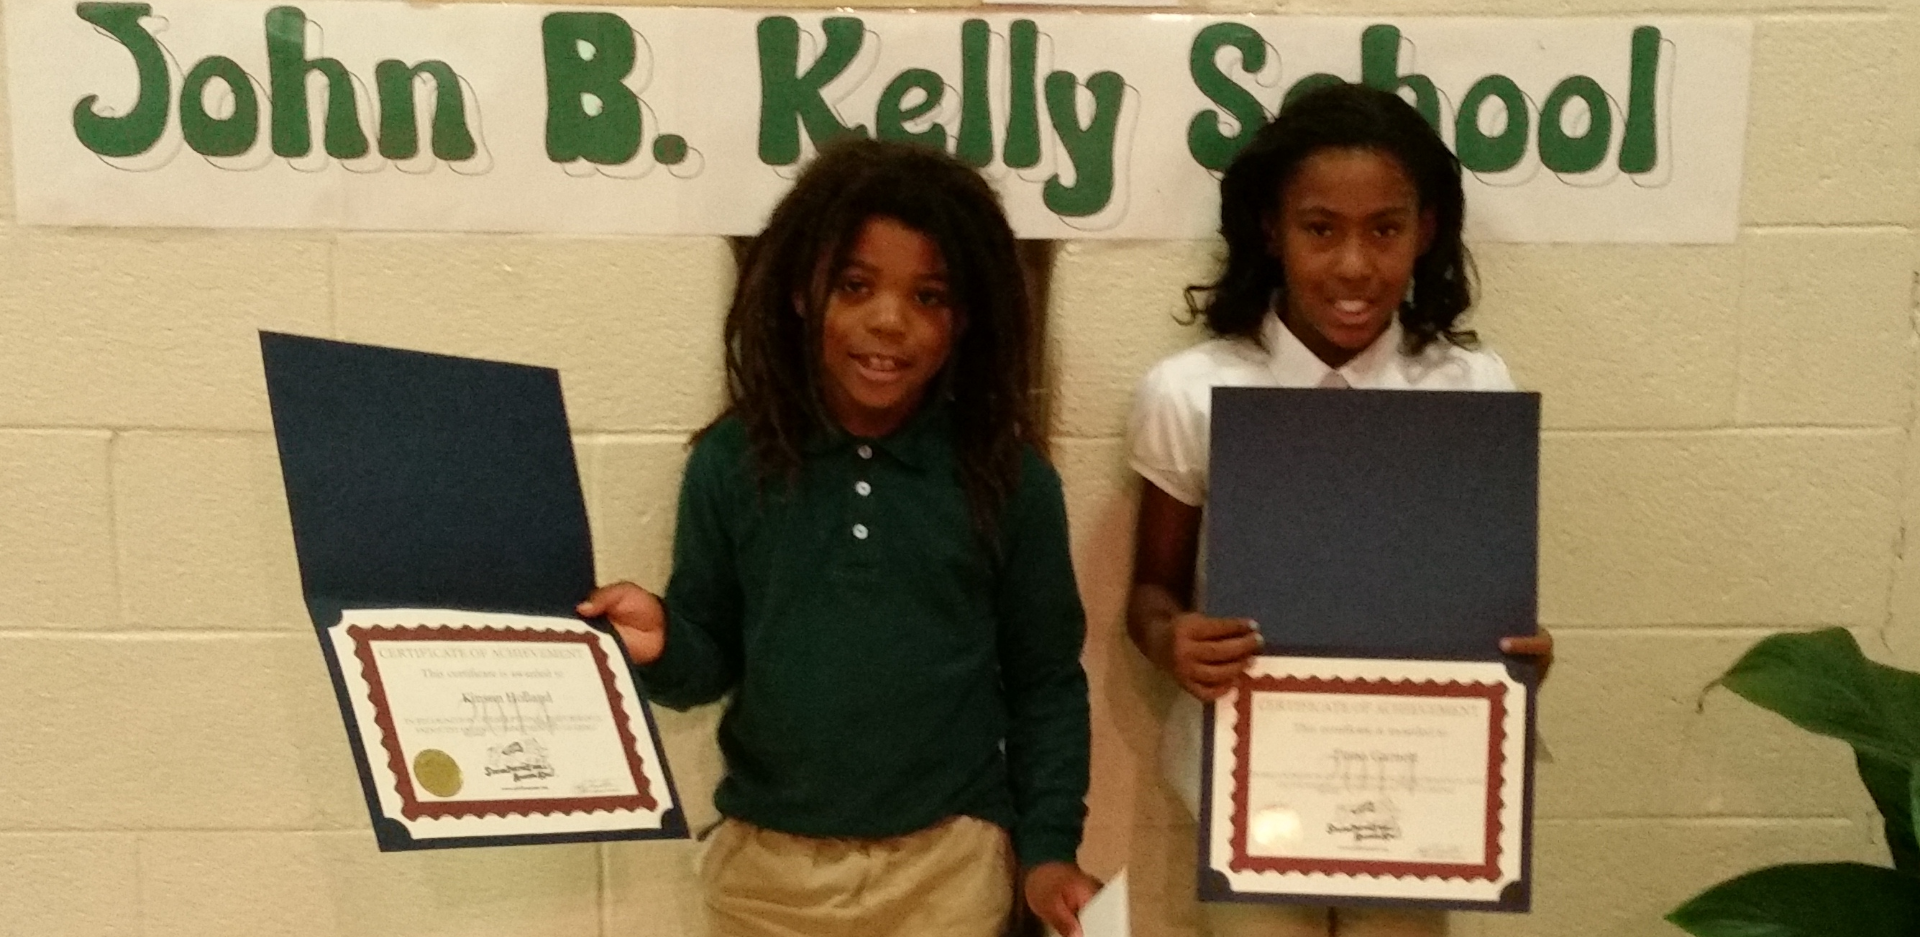 Winners from John B. Kelly School_edited